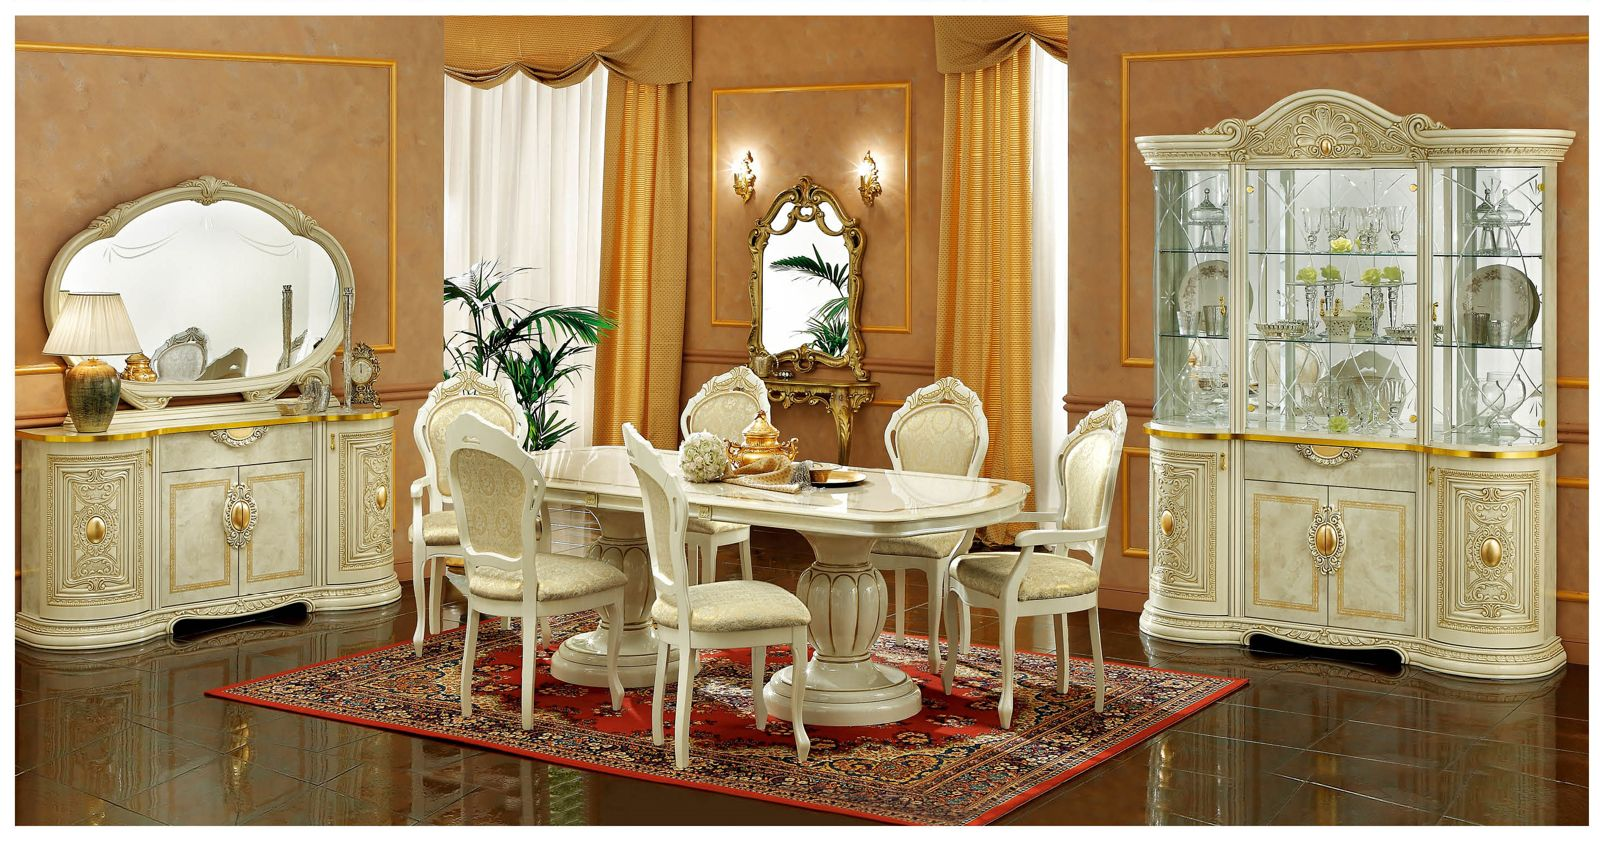 modern living room furnitures small ideas uk 2017 esf furniture leonardo 7pc dining table set in ivory by ...